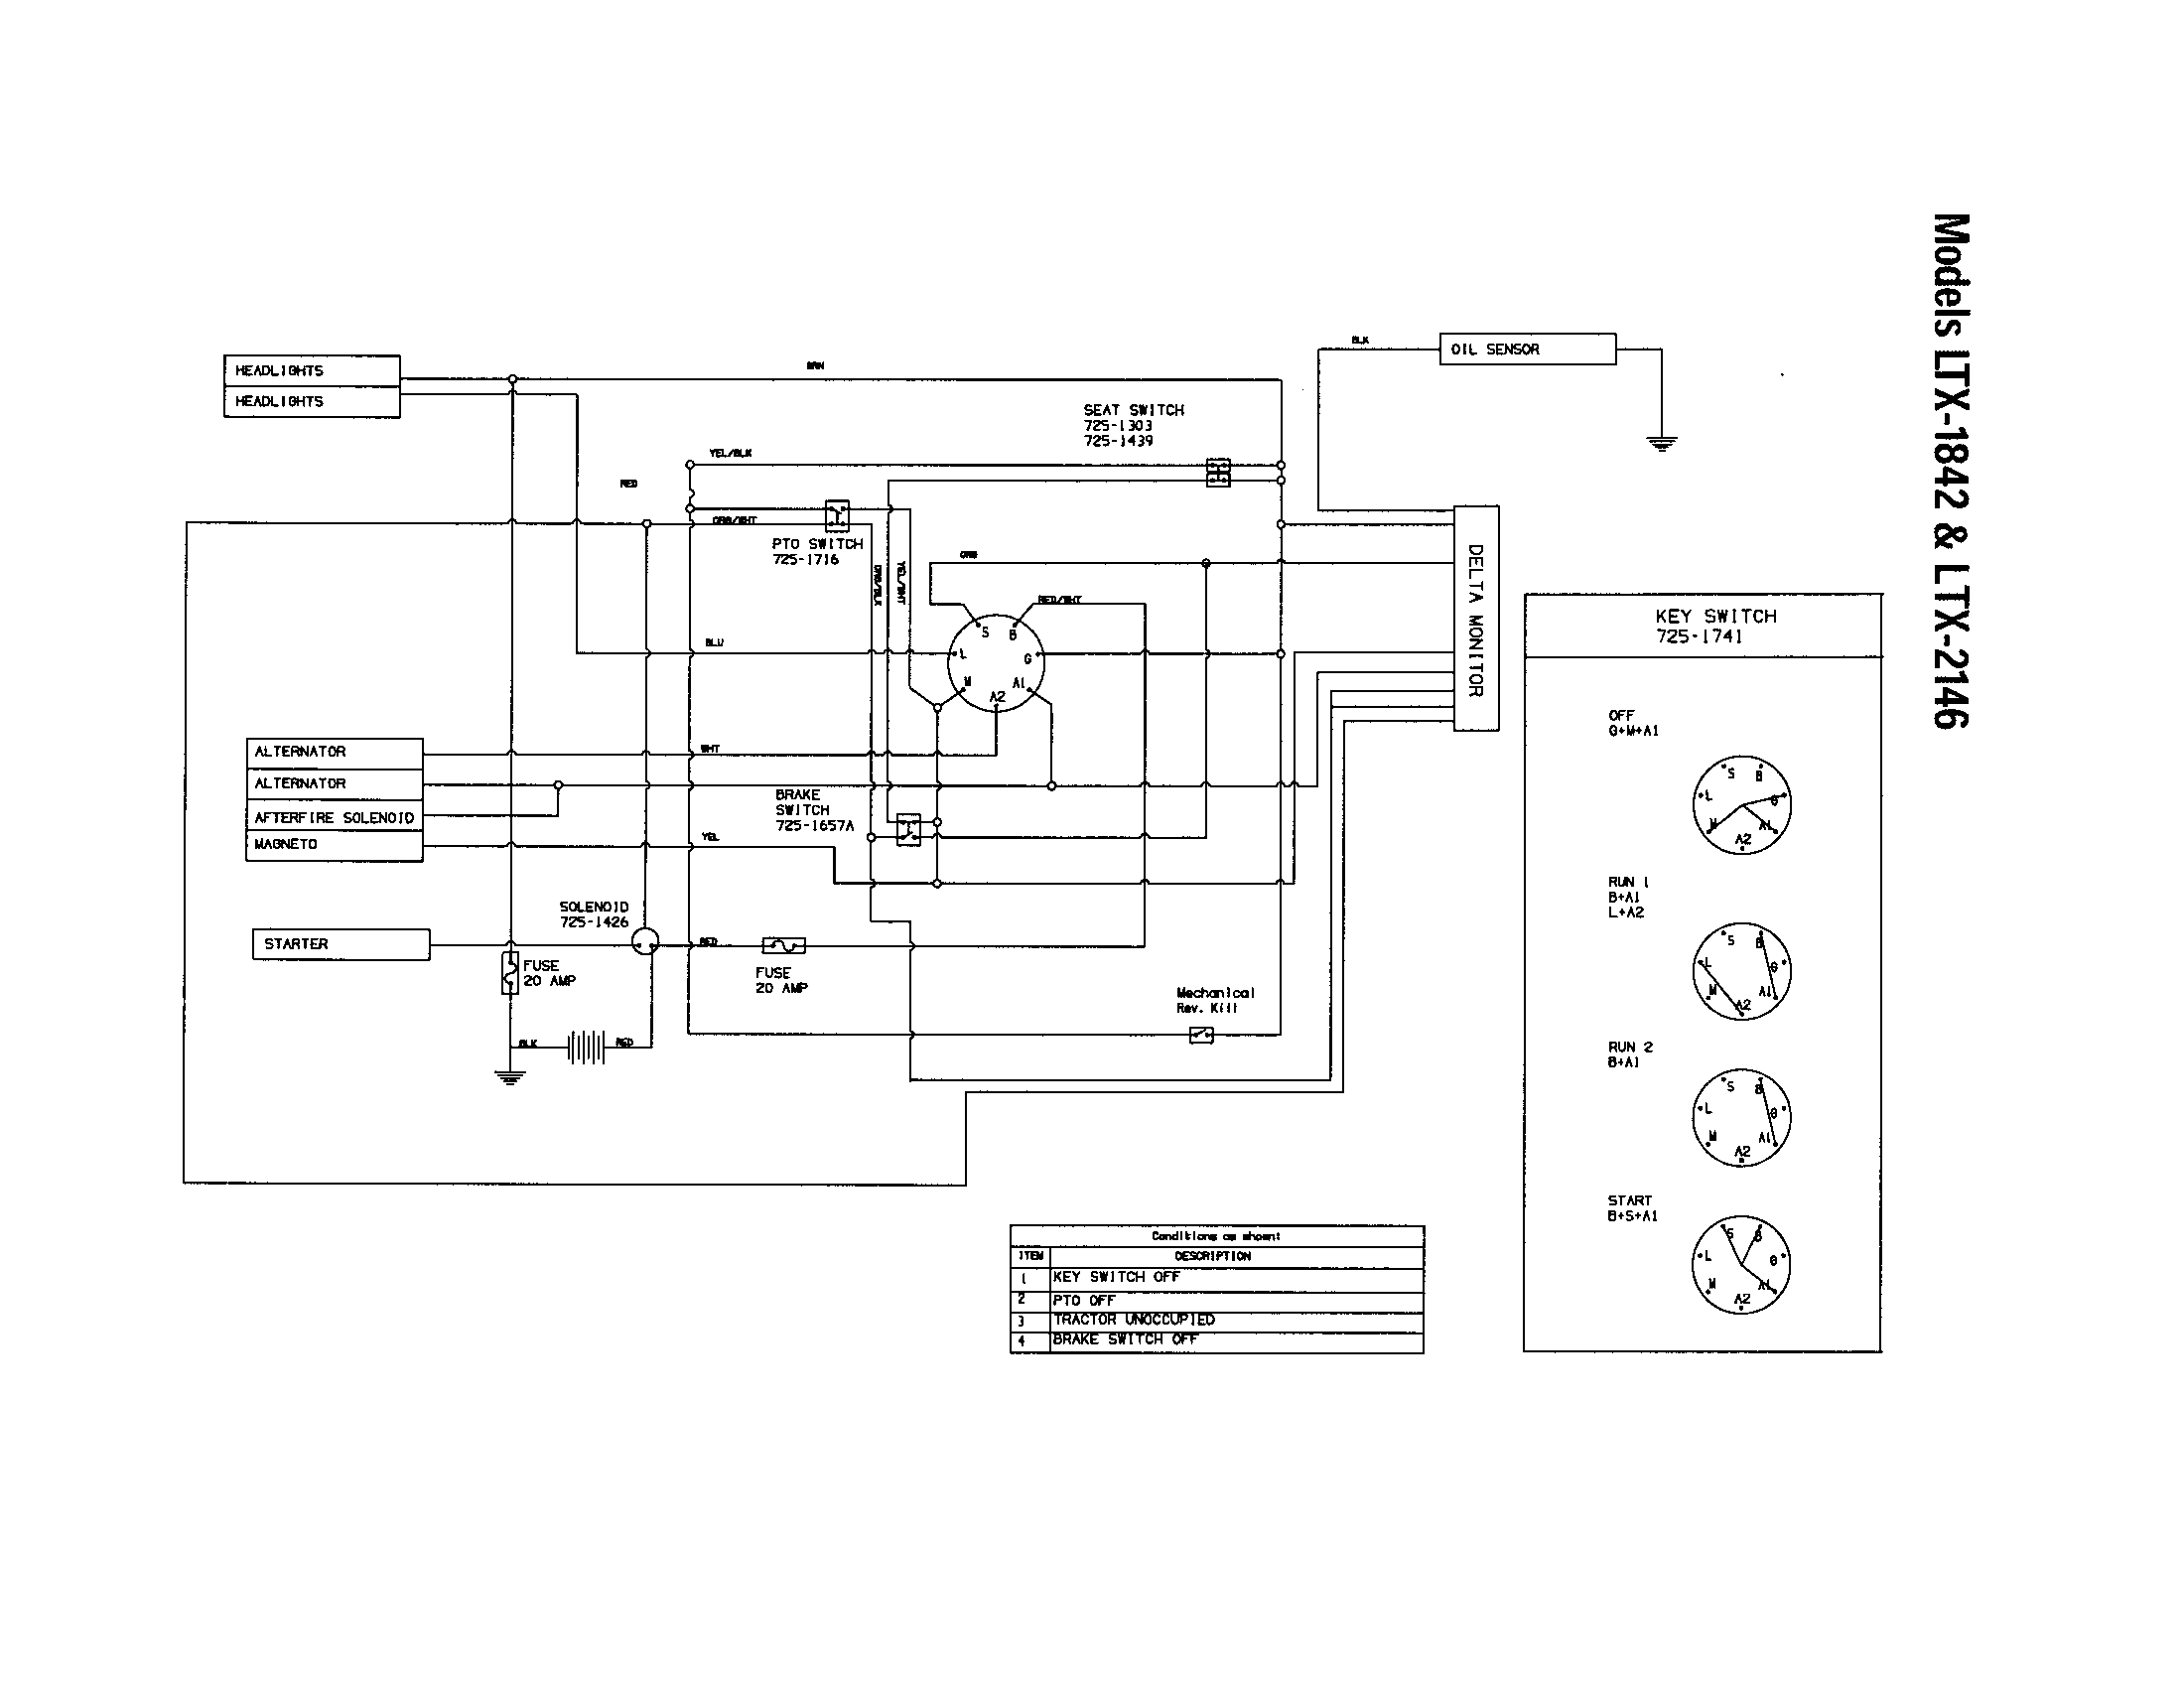 5f6fdf170ac50150de0653e8e97fb173 wiring diagram diagram & parts list for model 13ap609g063 troybilt riding mower wiring diagram at bayanpartner.co